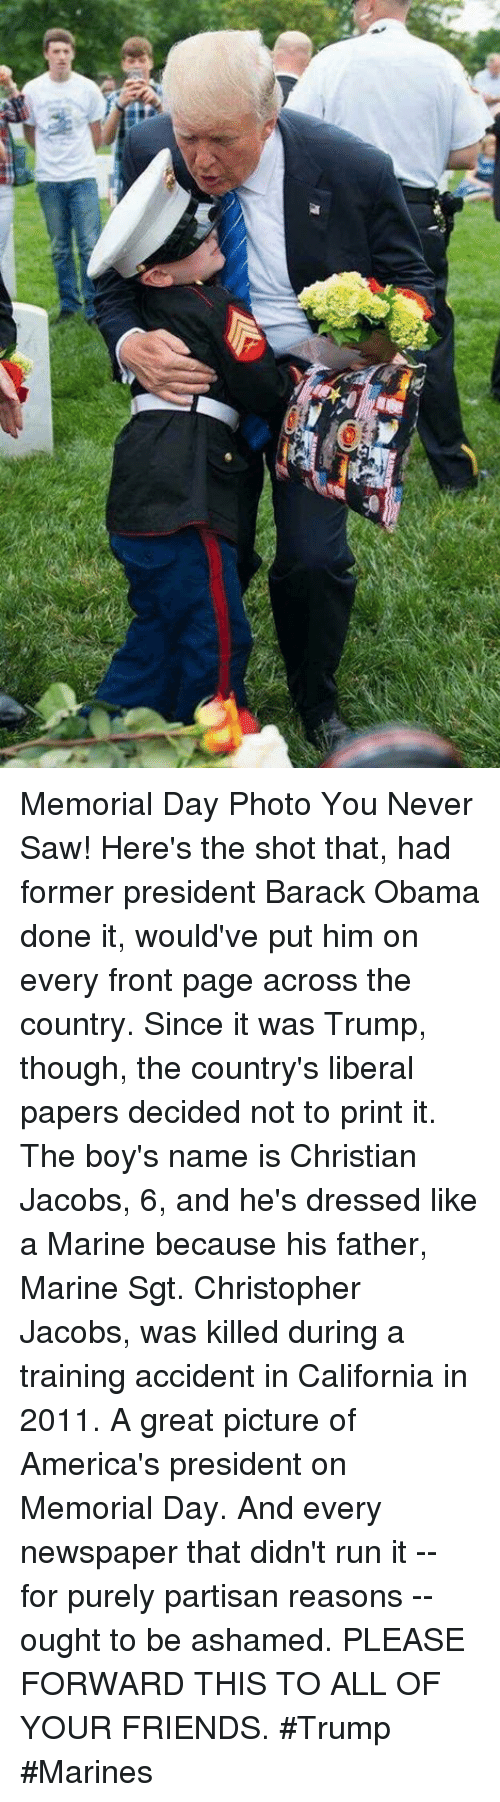 Memorial Day: Memorial Day Photo You Never Saw!   Here's the shot that, had former president Barack Obama  done it, would've put him on every front page across the  country. Since it was Trump, though, the country's liberal  papers decided not to print it.   The boy's name is Christian Jacobs, 6, and he's dressed like  a Marine because his father, Marine Sgt. Christopher Jacobs, was killed during a training accident in California in 2011.  A great picture of America's president on Memorial Day. And  every newspaper that didn't run it -- for purely partisan  reasons -- ought to be ashamed.  PLEASE FORWARD THIS TO ALL OF YOUR FRIENDS.  #Trump #Marines